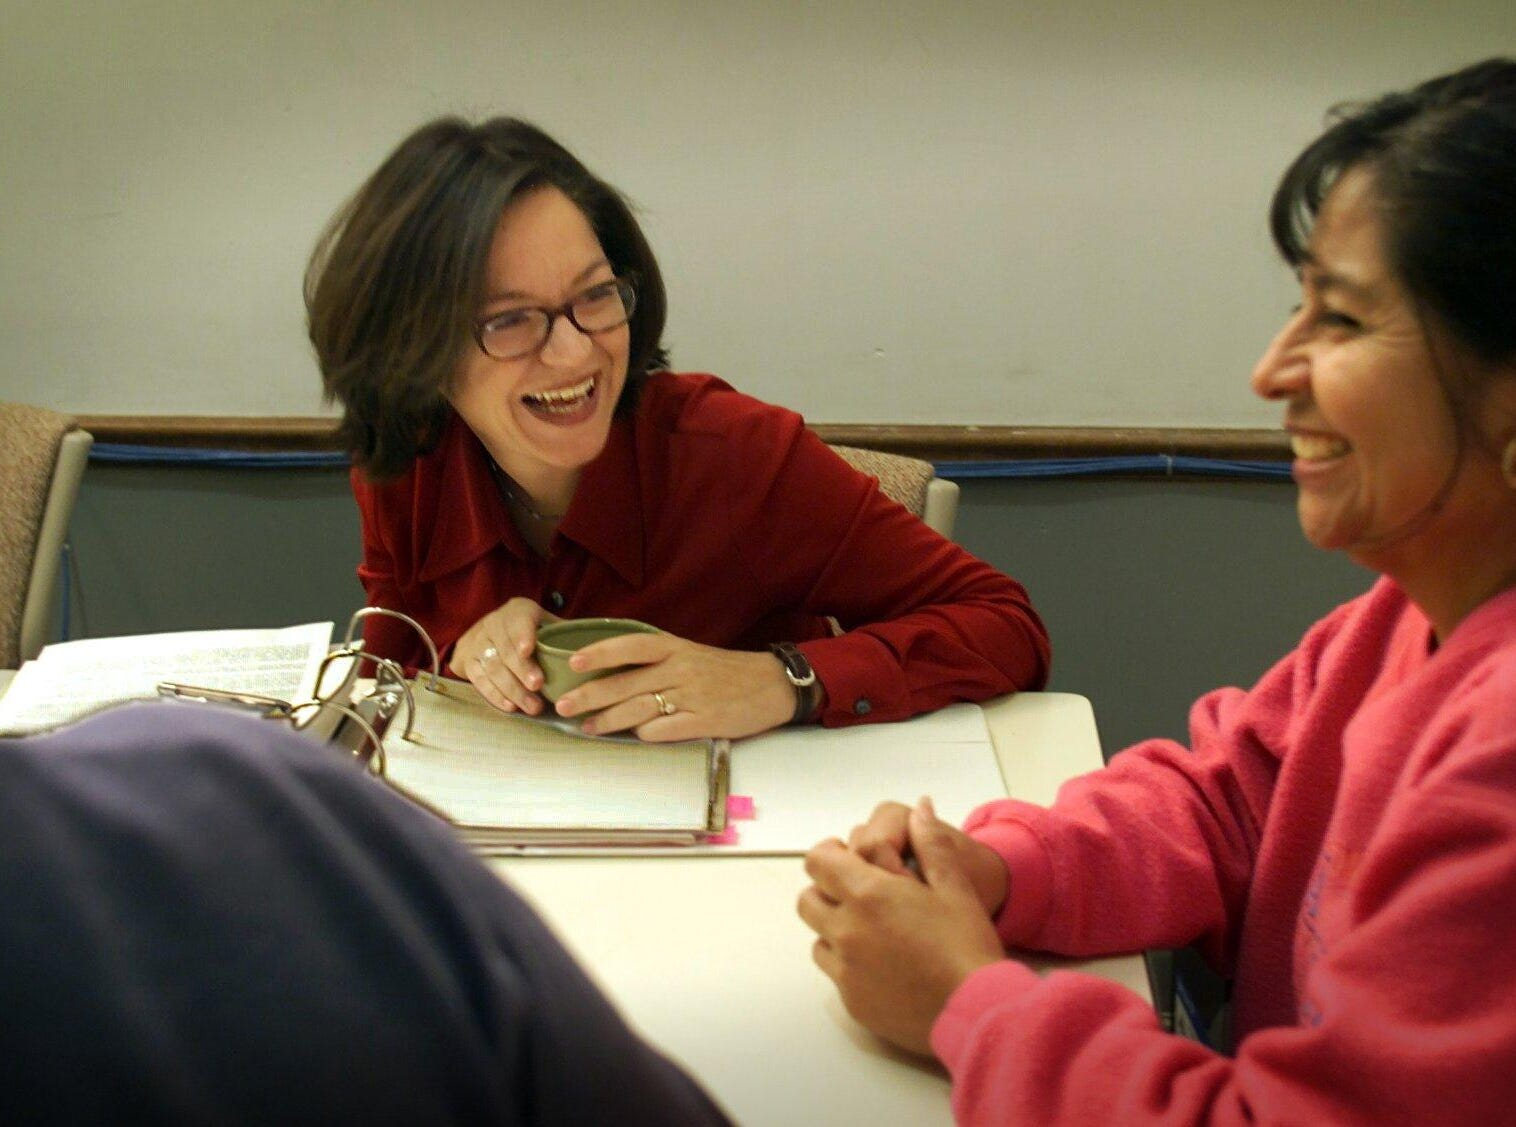 Renata Soto laughs with Herlinda Diaz during a meeting of the Woodbine Community Organization, where she serves on the Hispanic advisory committee, on Nov. 22, 2000.